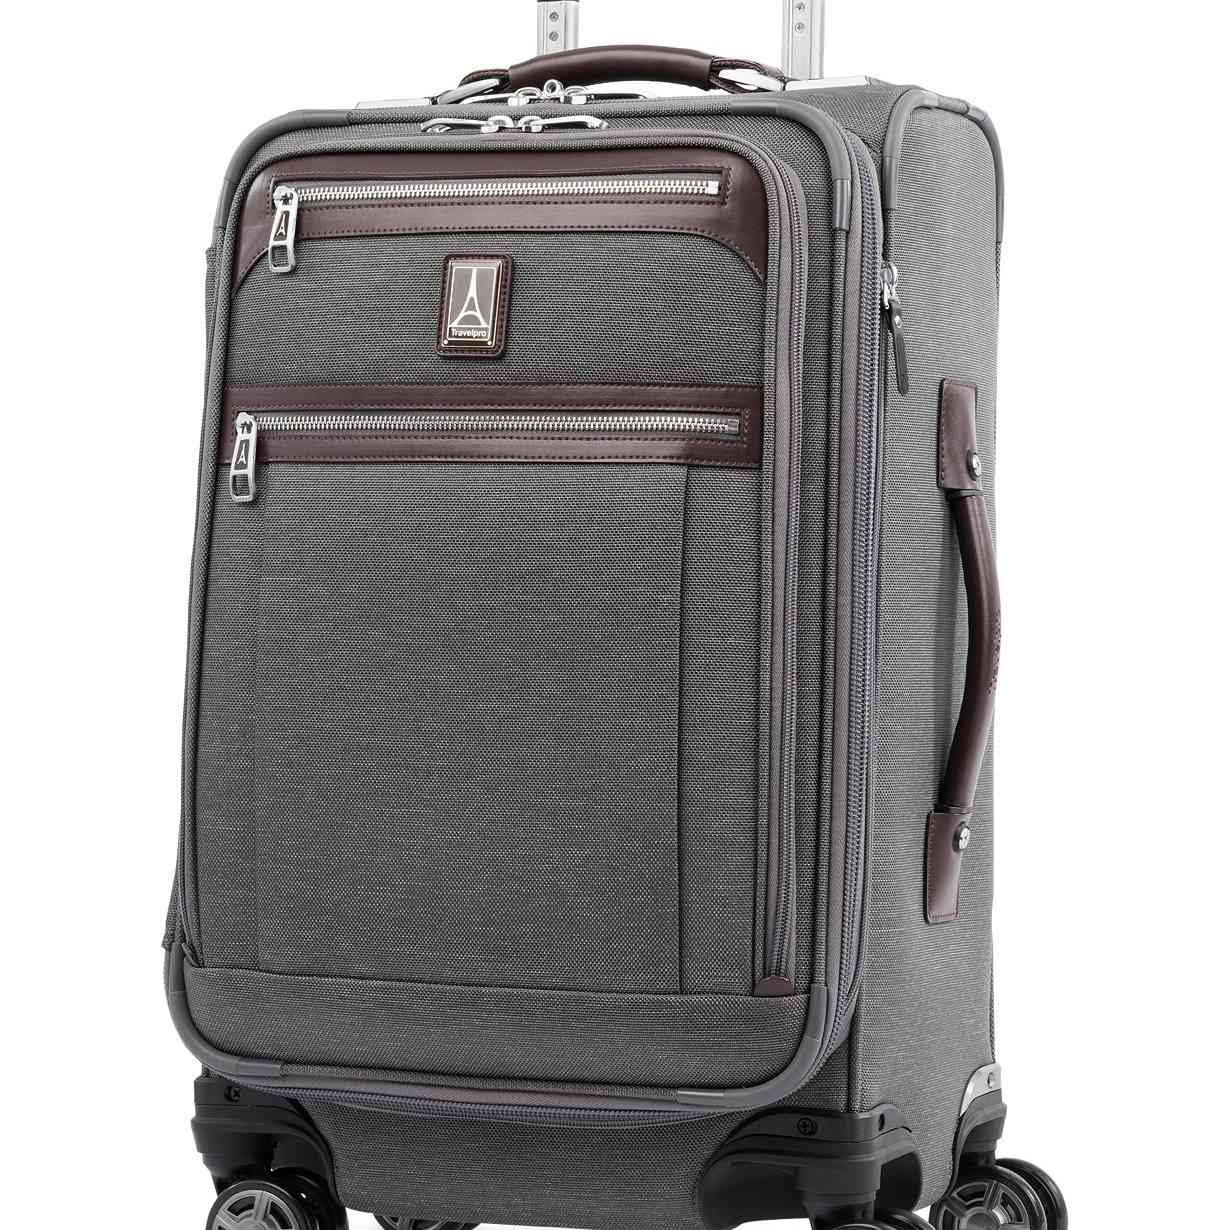 Travelpro Platinum Elite 21-Inch Carry-On Spinner